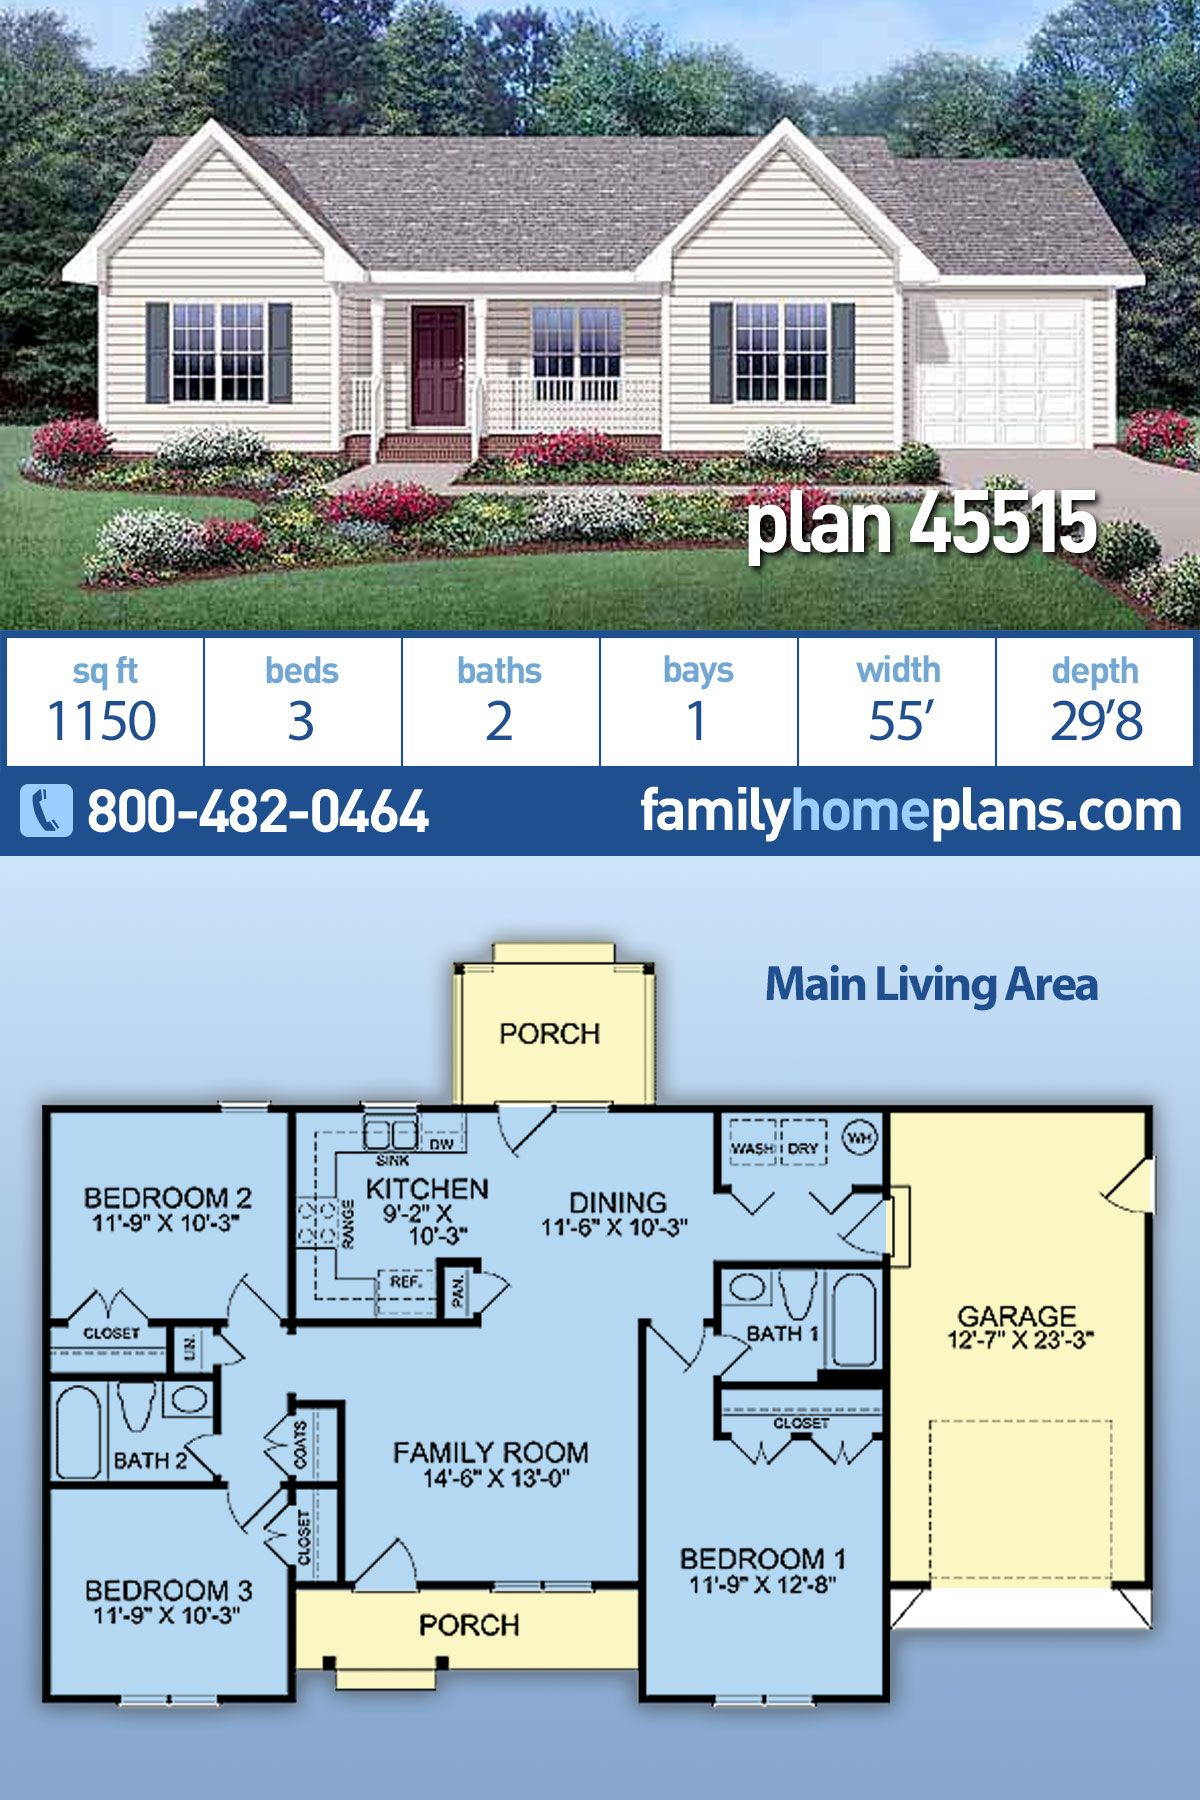 Ranch Style House Plan 45515 With 3 Bed 2 Bath 1 Car Garage Family House Plans Ranch Style House Plans Ranch Style Homes